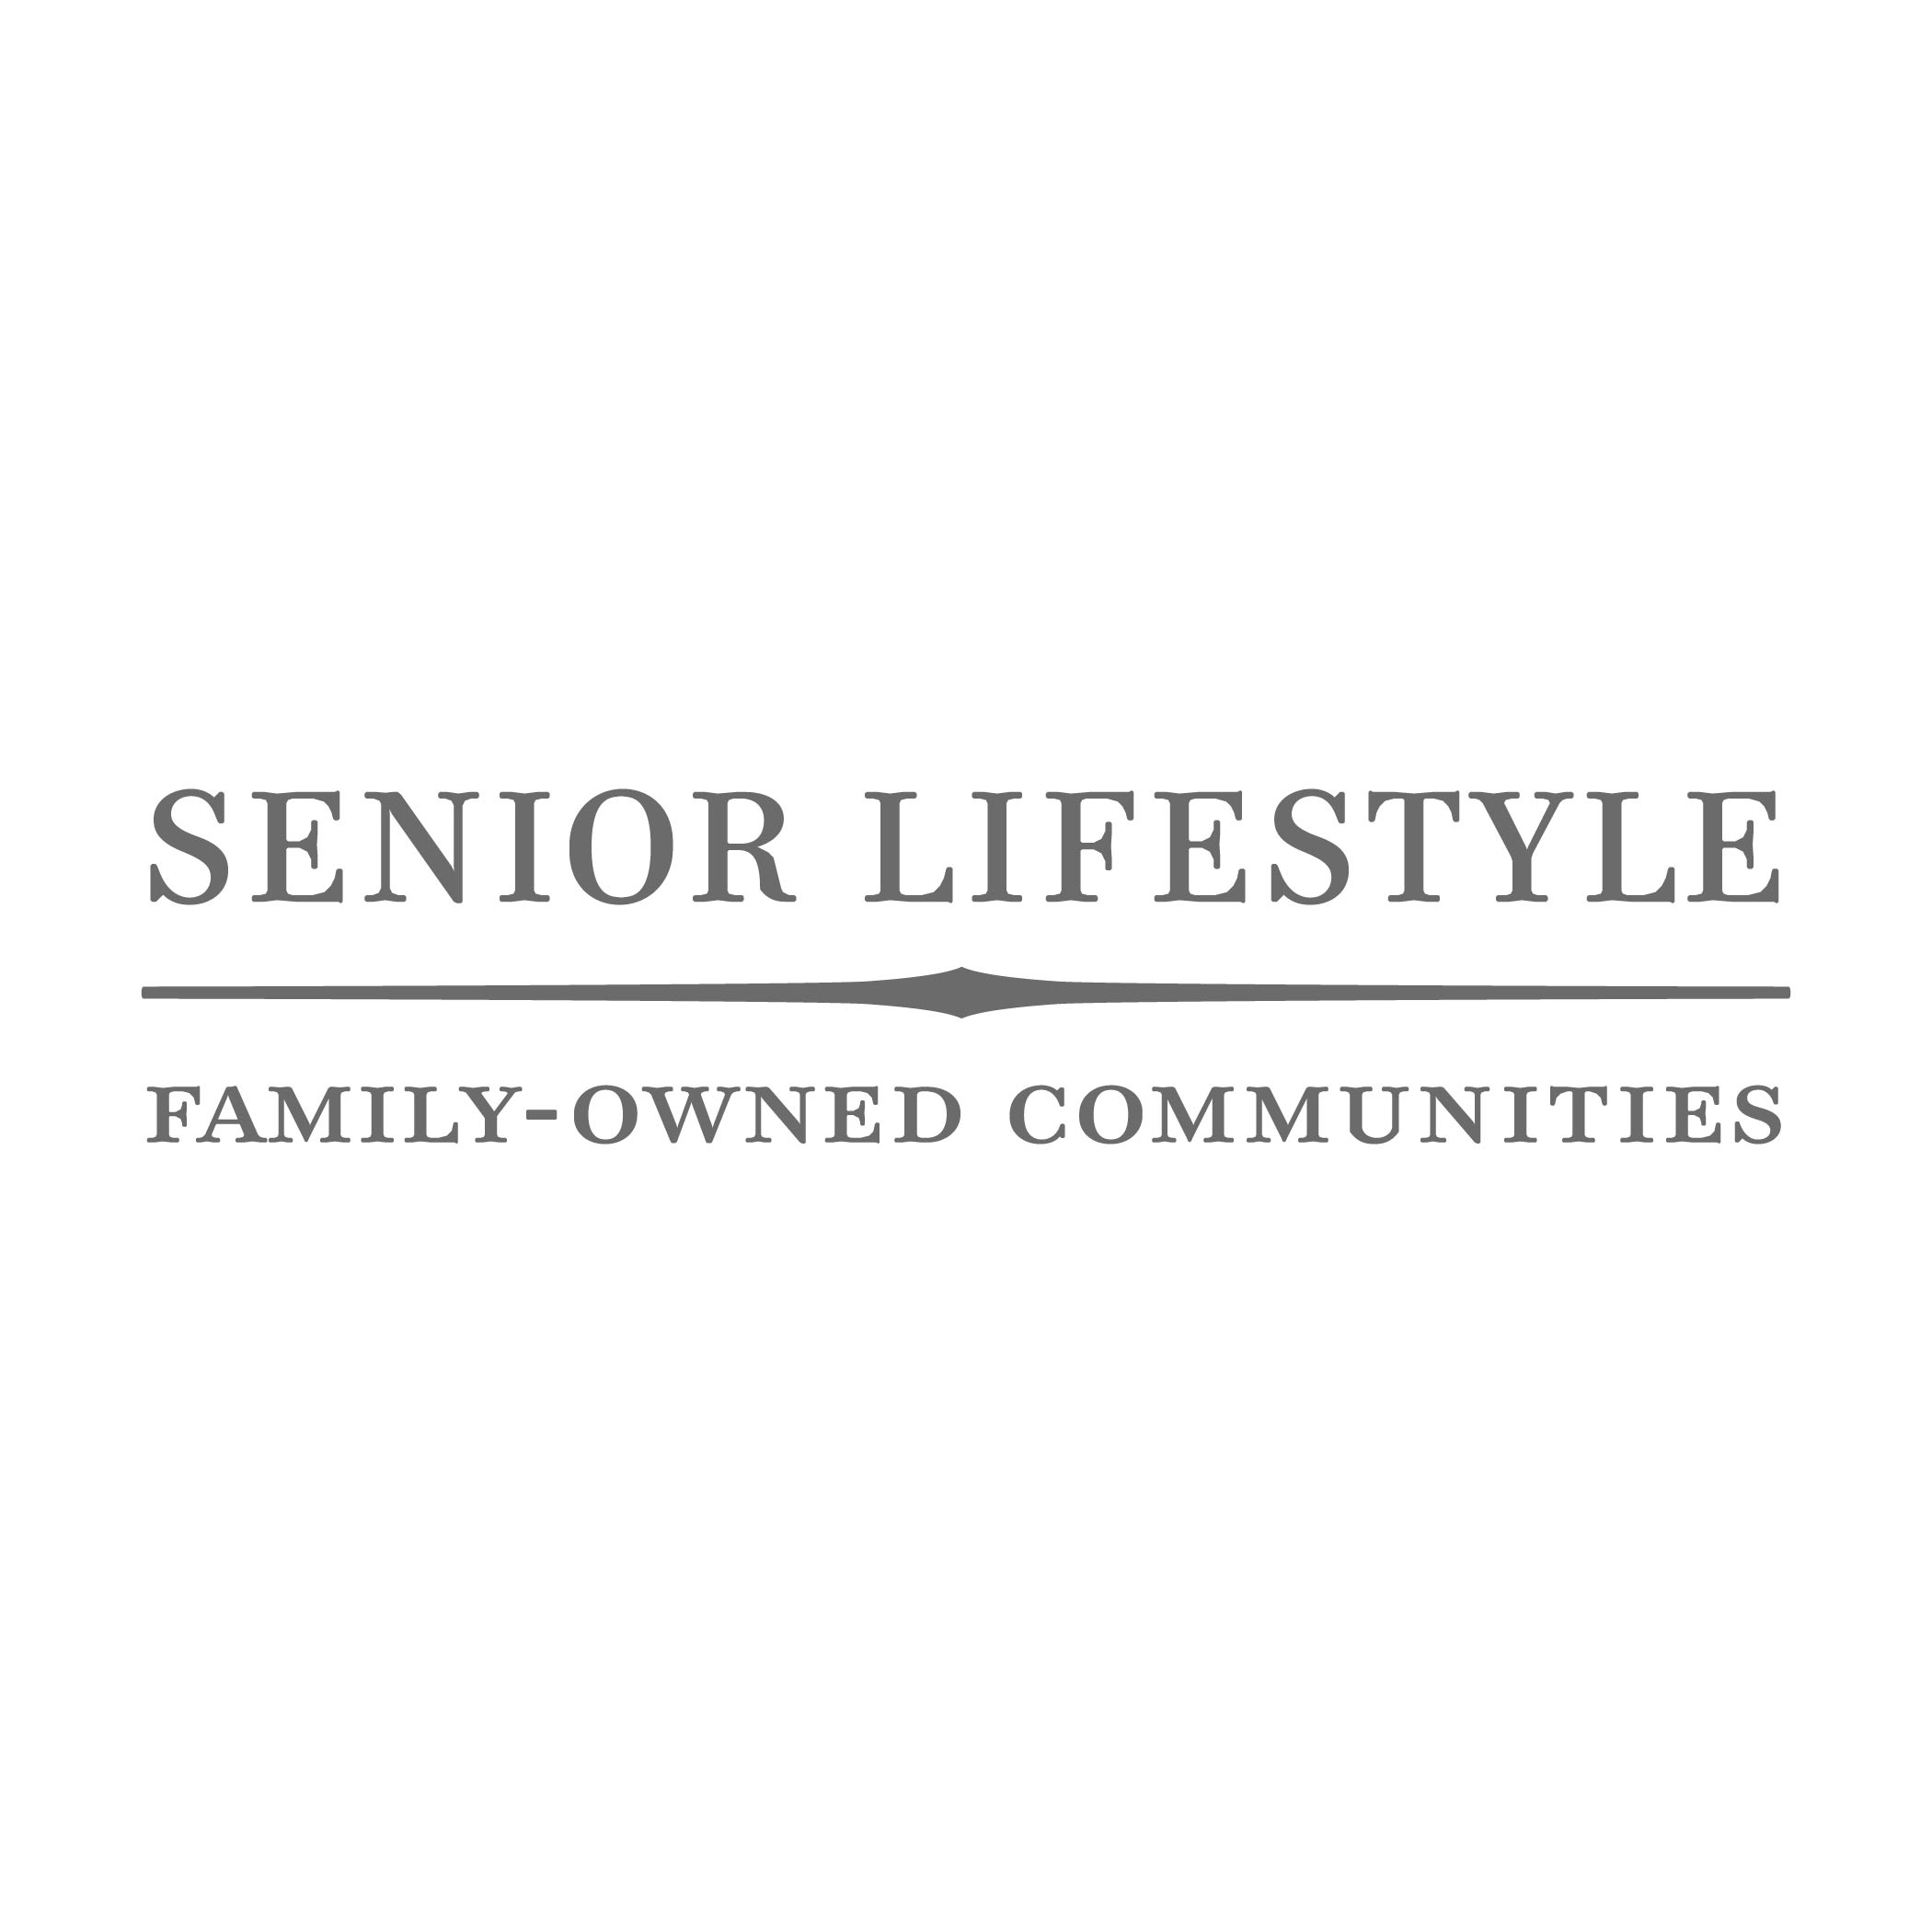 /brands/Senior_Lifestyle_Corporation/Florida